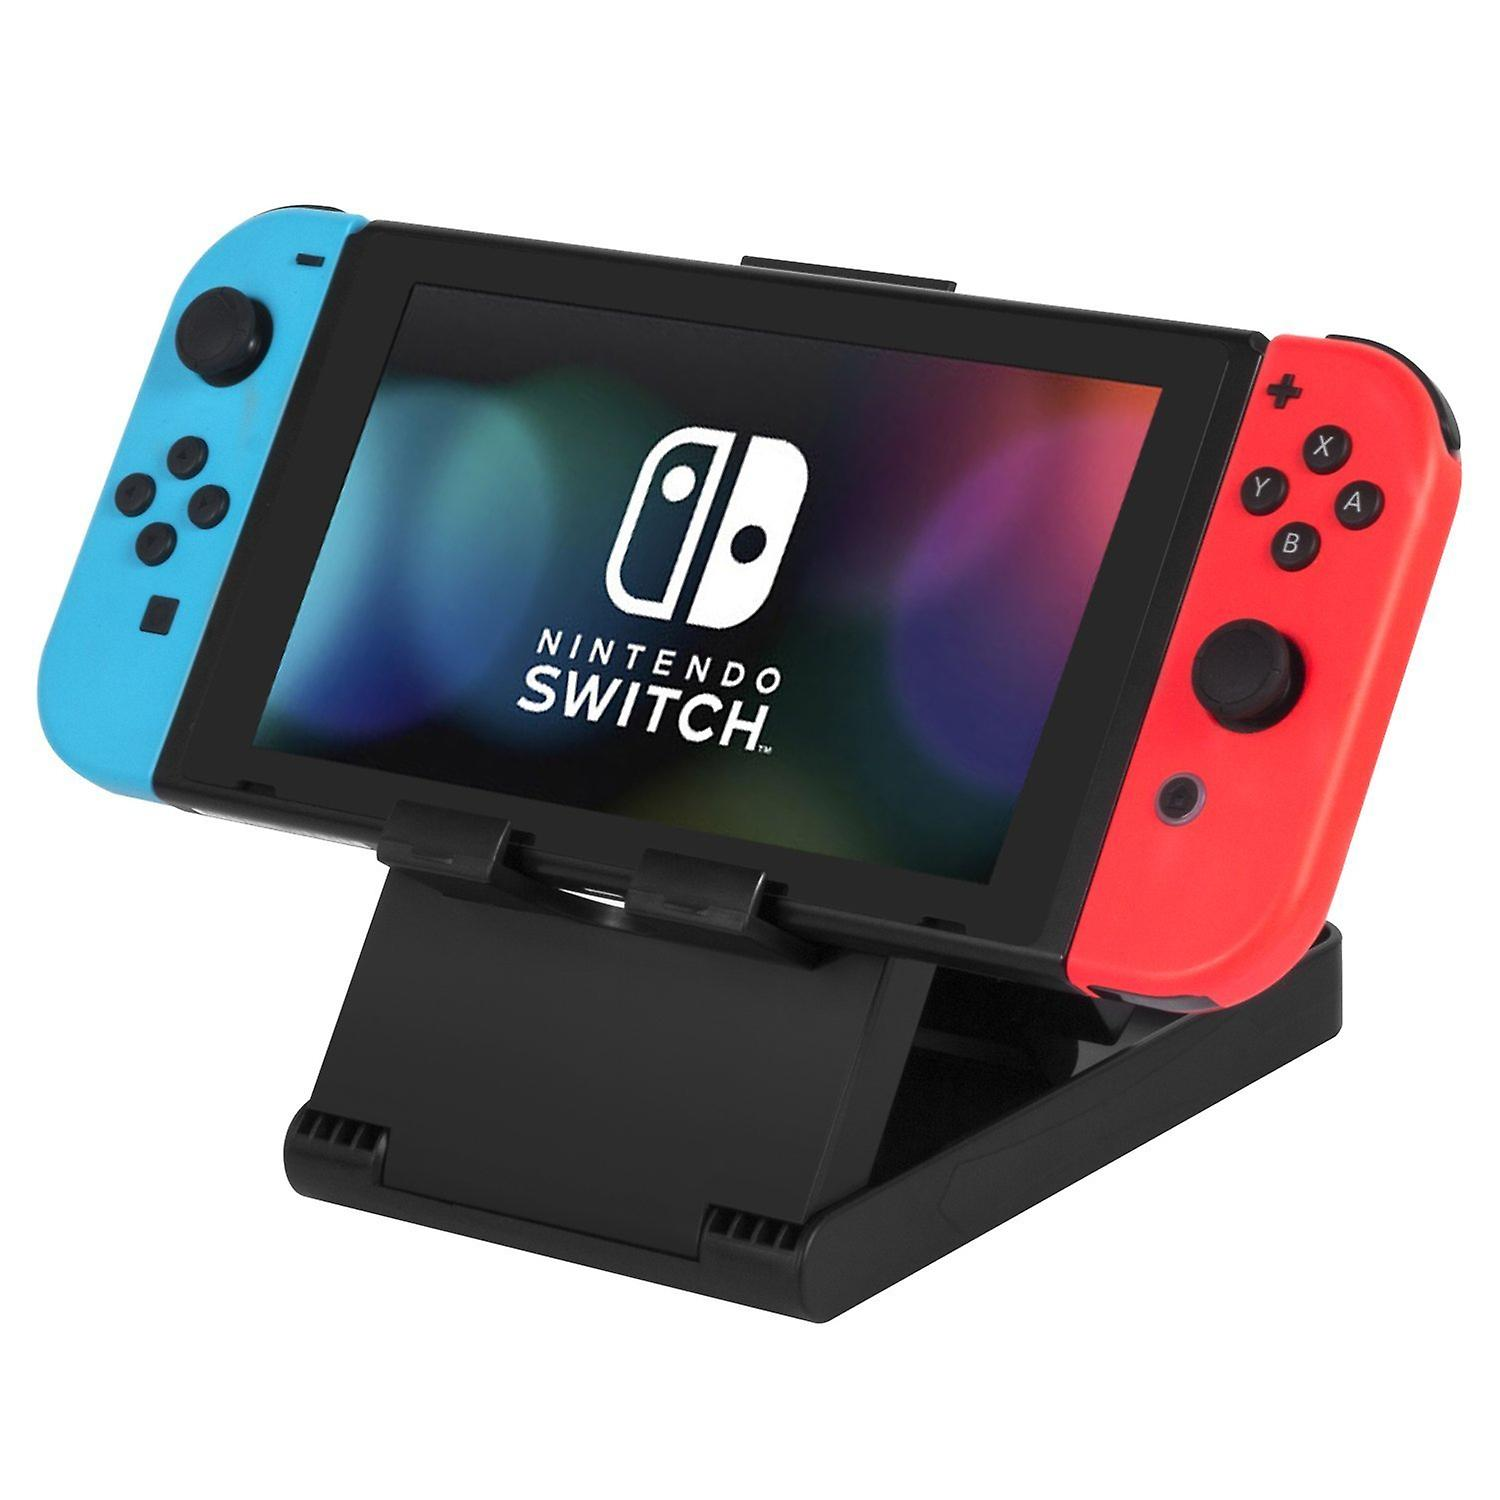 Tabletop multi angle foldable stand for nintendo switch with charging port access - black